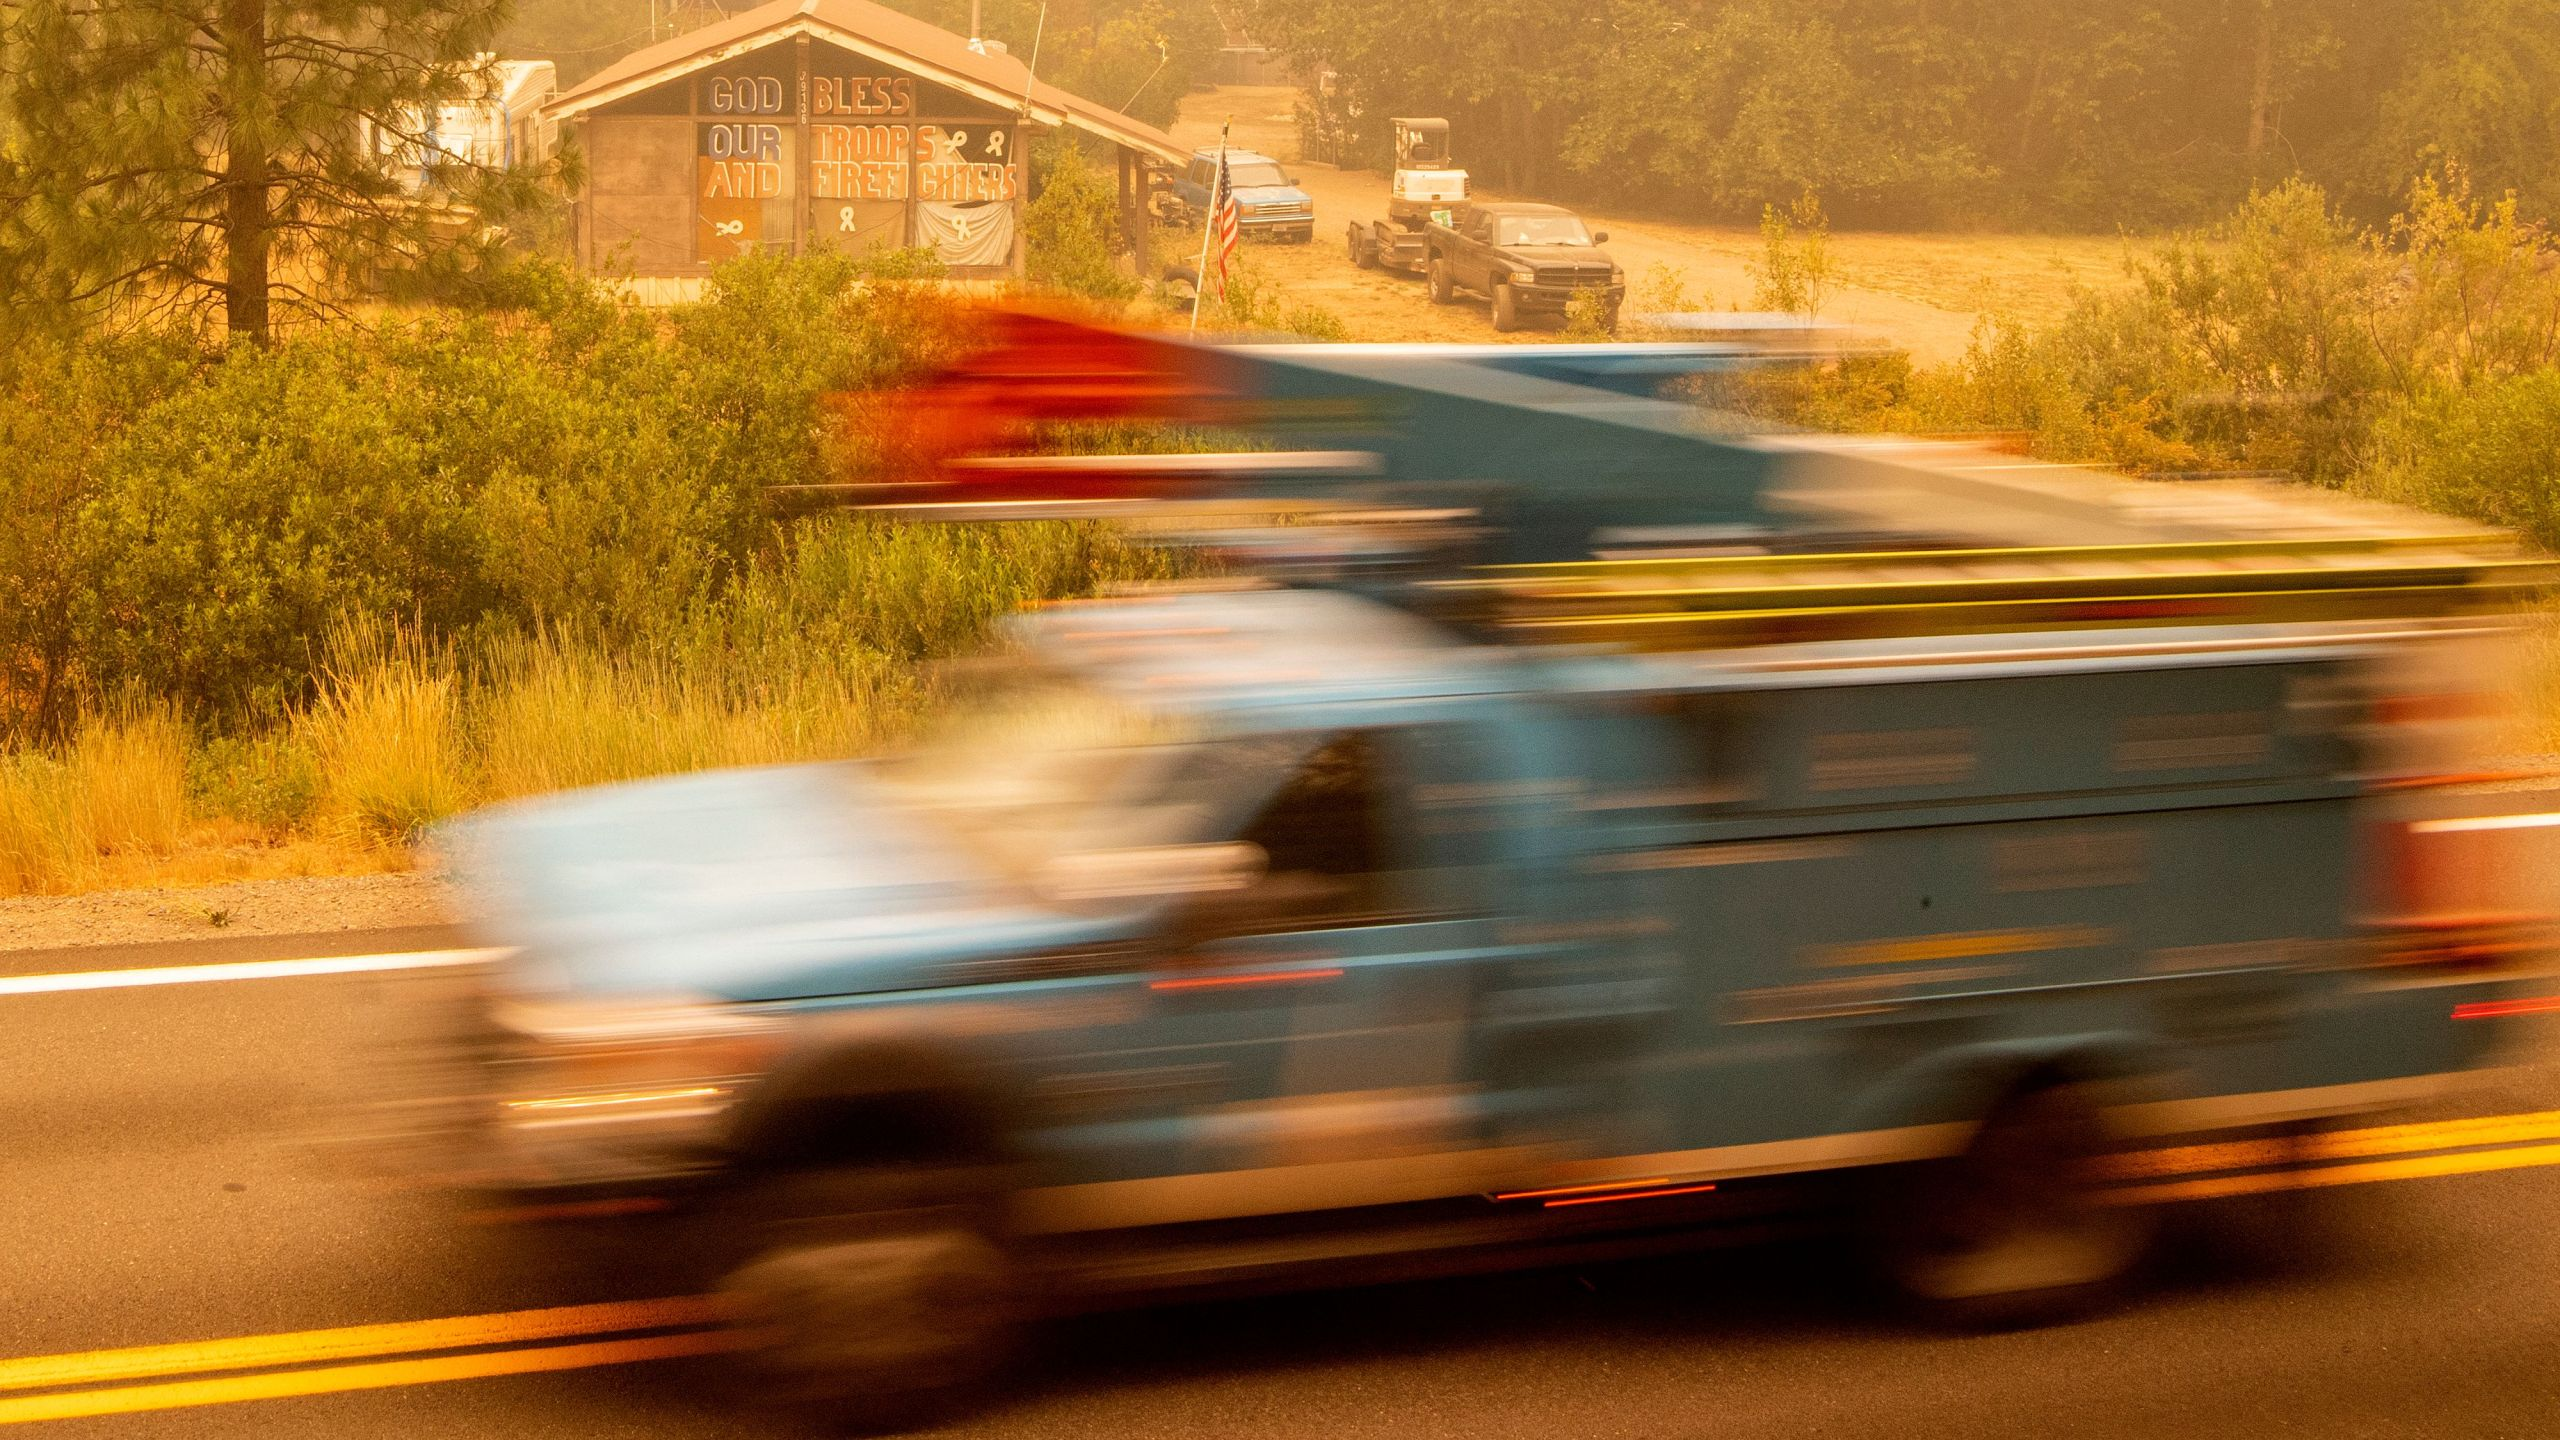 A PG&E truck passes by a home with a message to firefighters during the Dixie Fire near Quincy on July 26, 2021. (JOSH EDELSON/AFP via Getty Images)